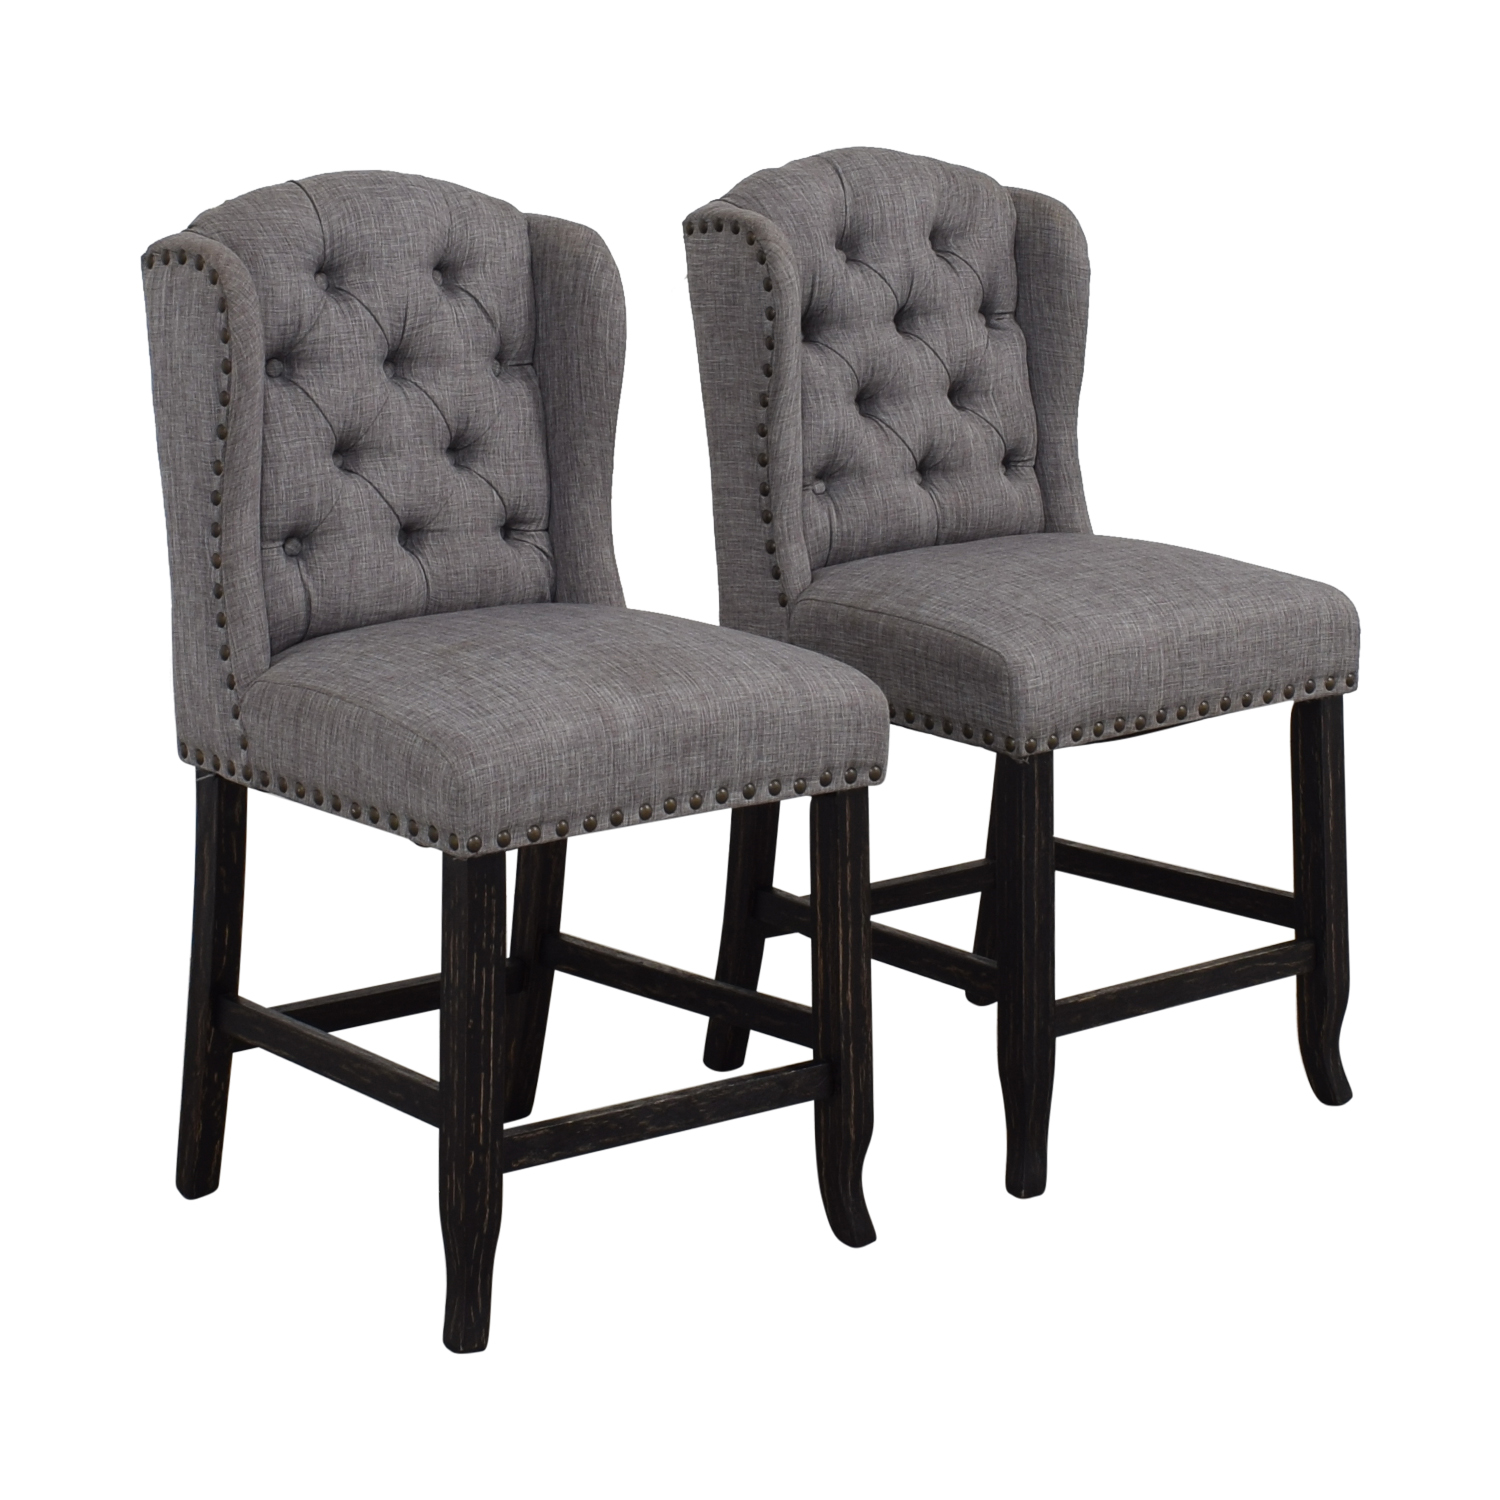 Furniture of America Furniture of America Grey Tufted Counter Stools Chairs